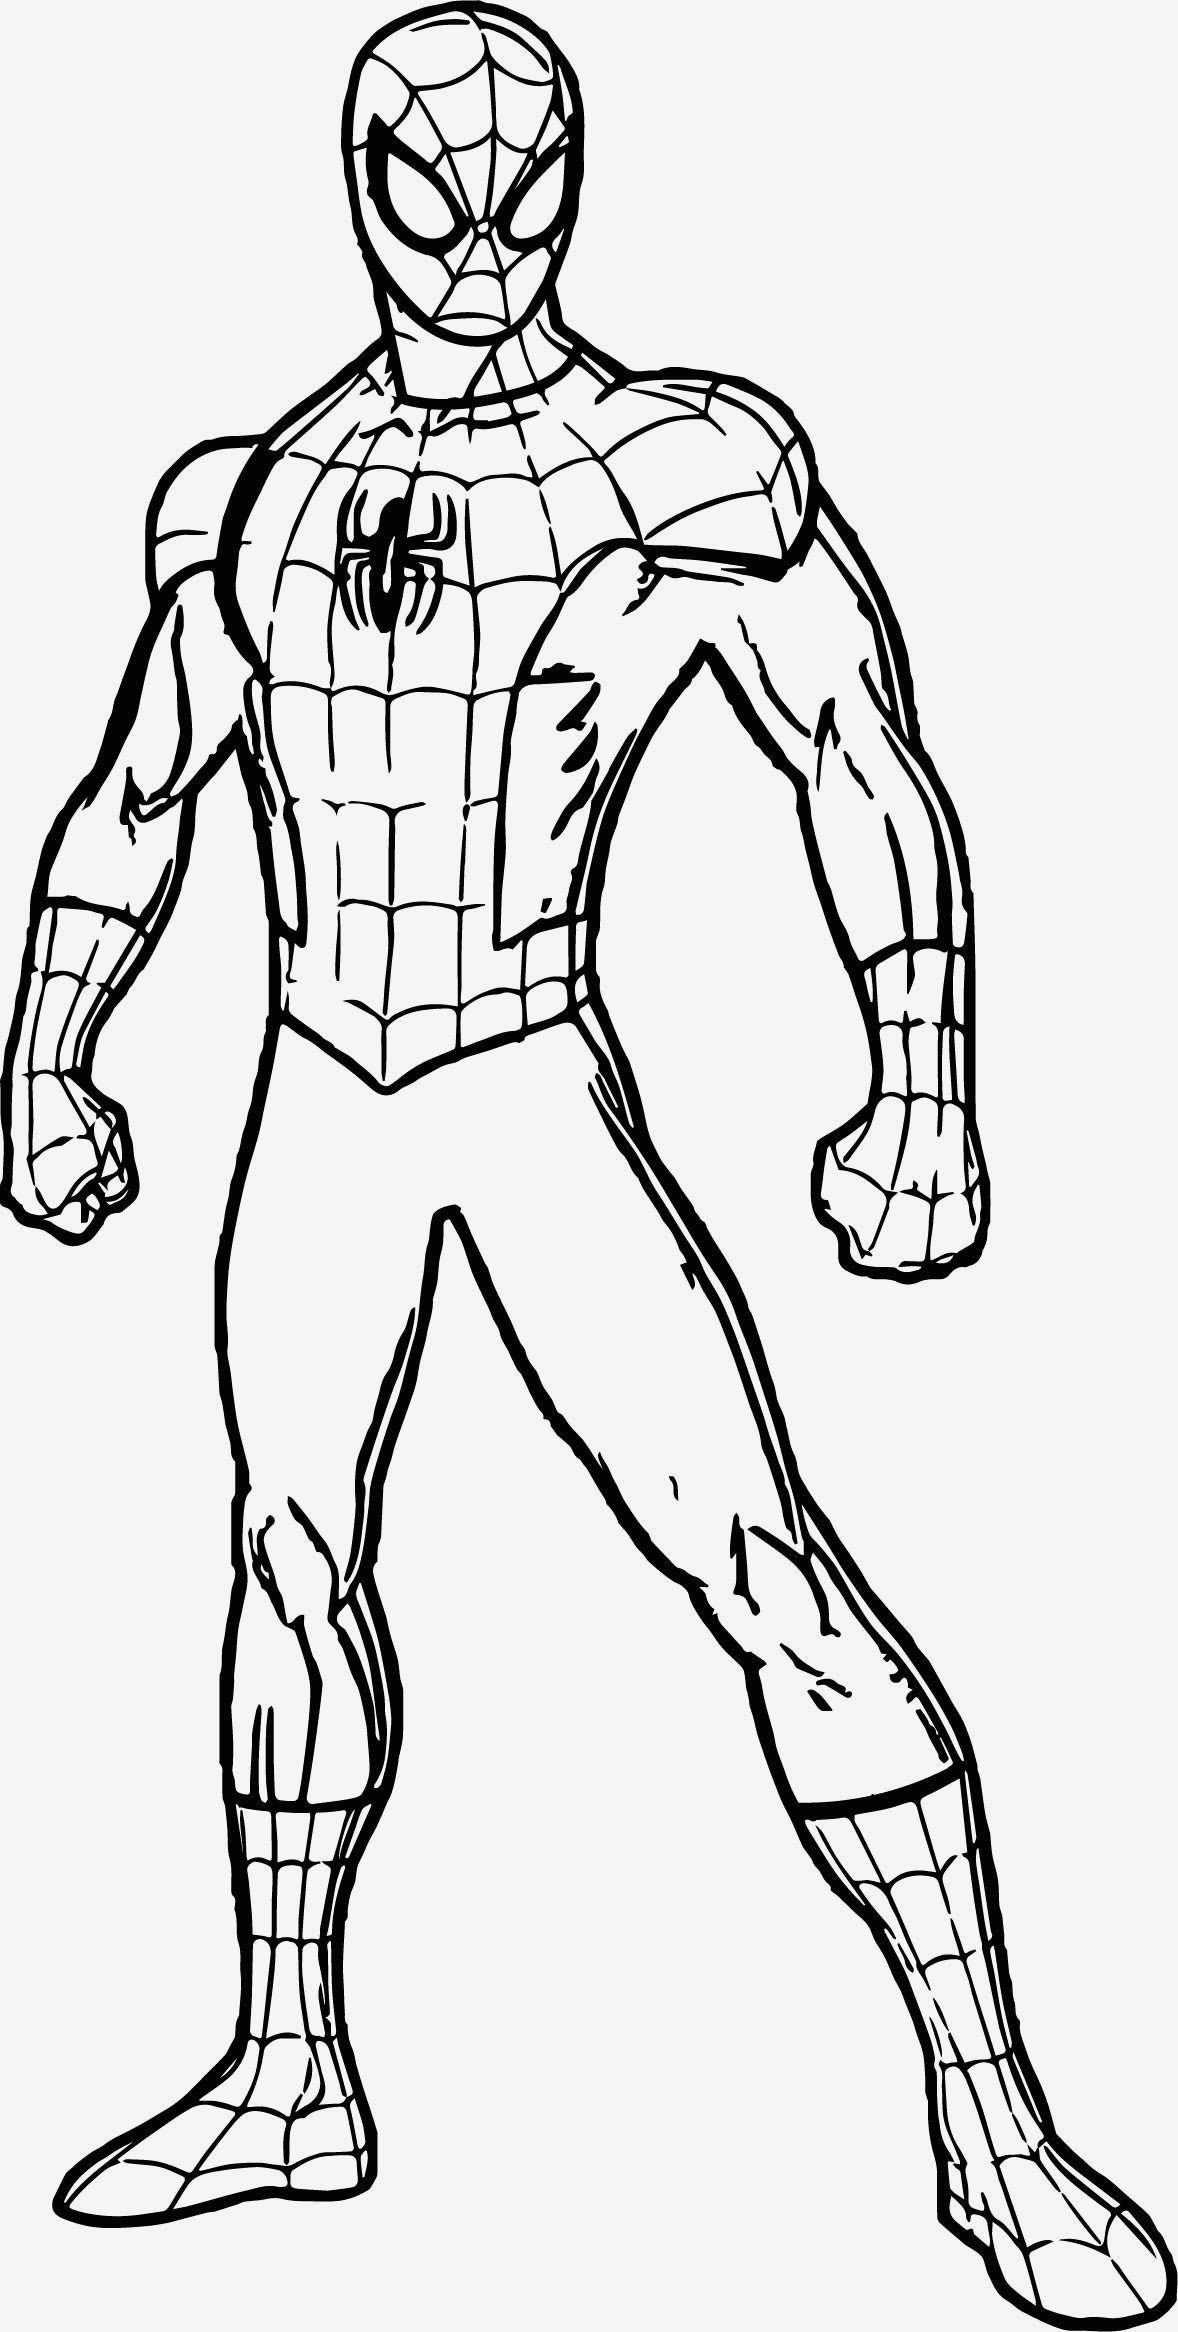 Marvelous Image Of Free Spiderman Coloring Pages Davemelillo Com Marvel Coloring Avengers Coloring Pages Hulk Coloring Pages